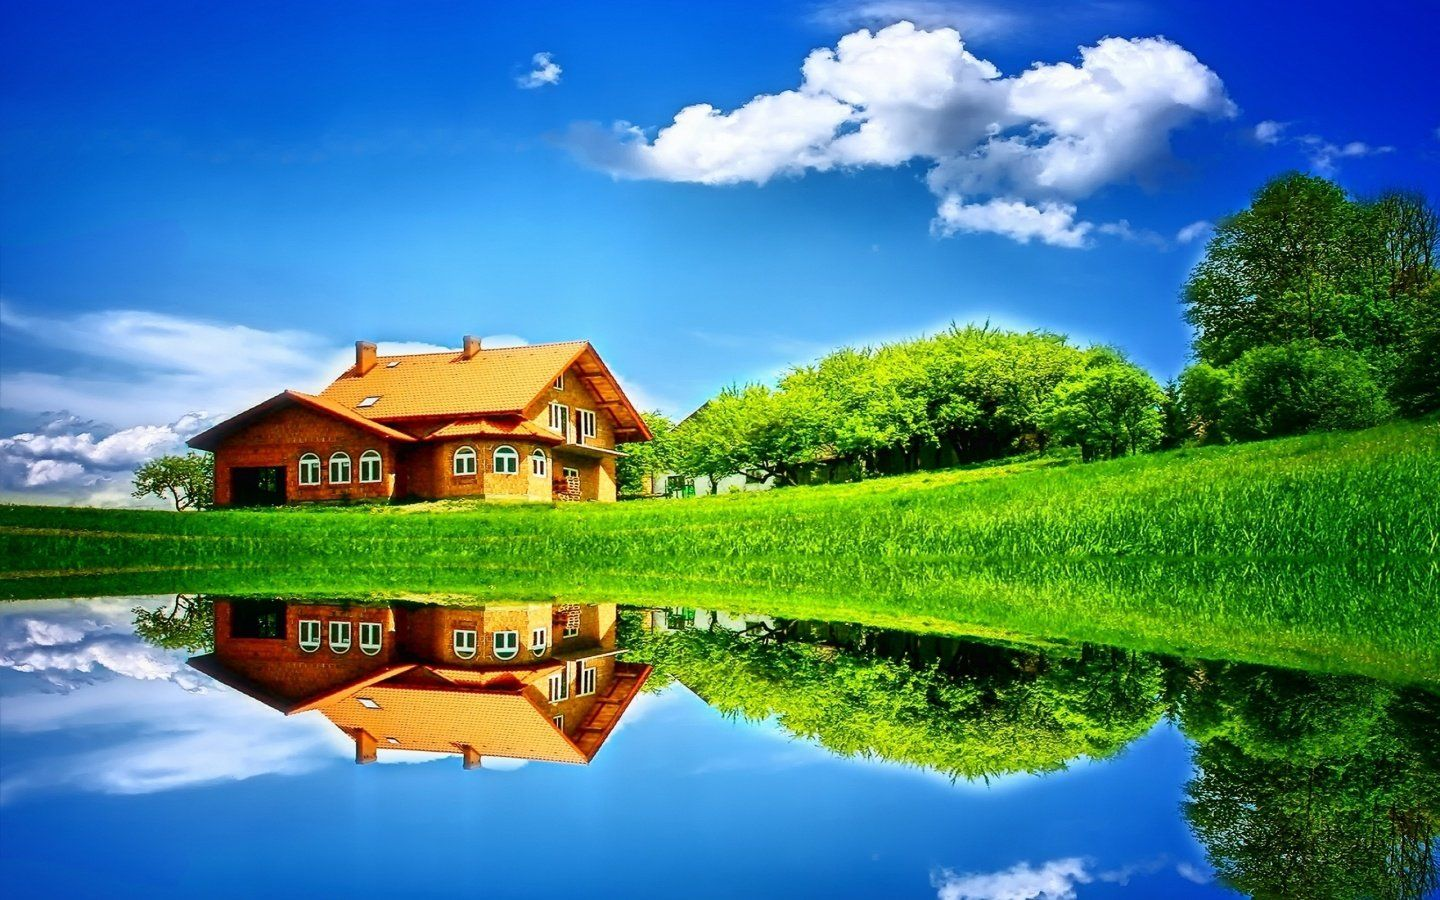 Dream House Wallpaper High Definition Dry Awesomeness Home 1440x900